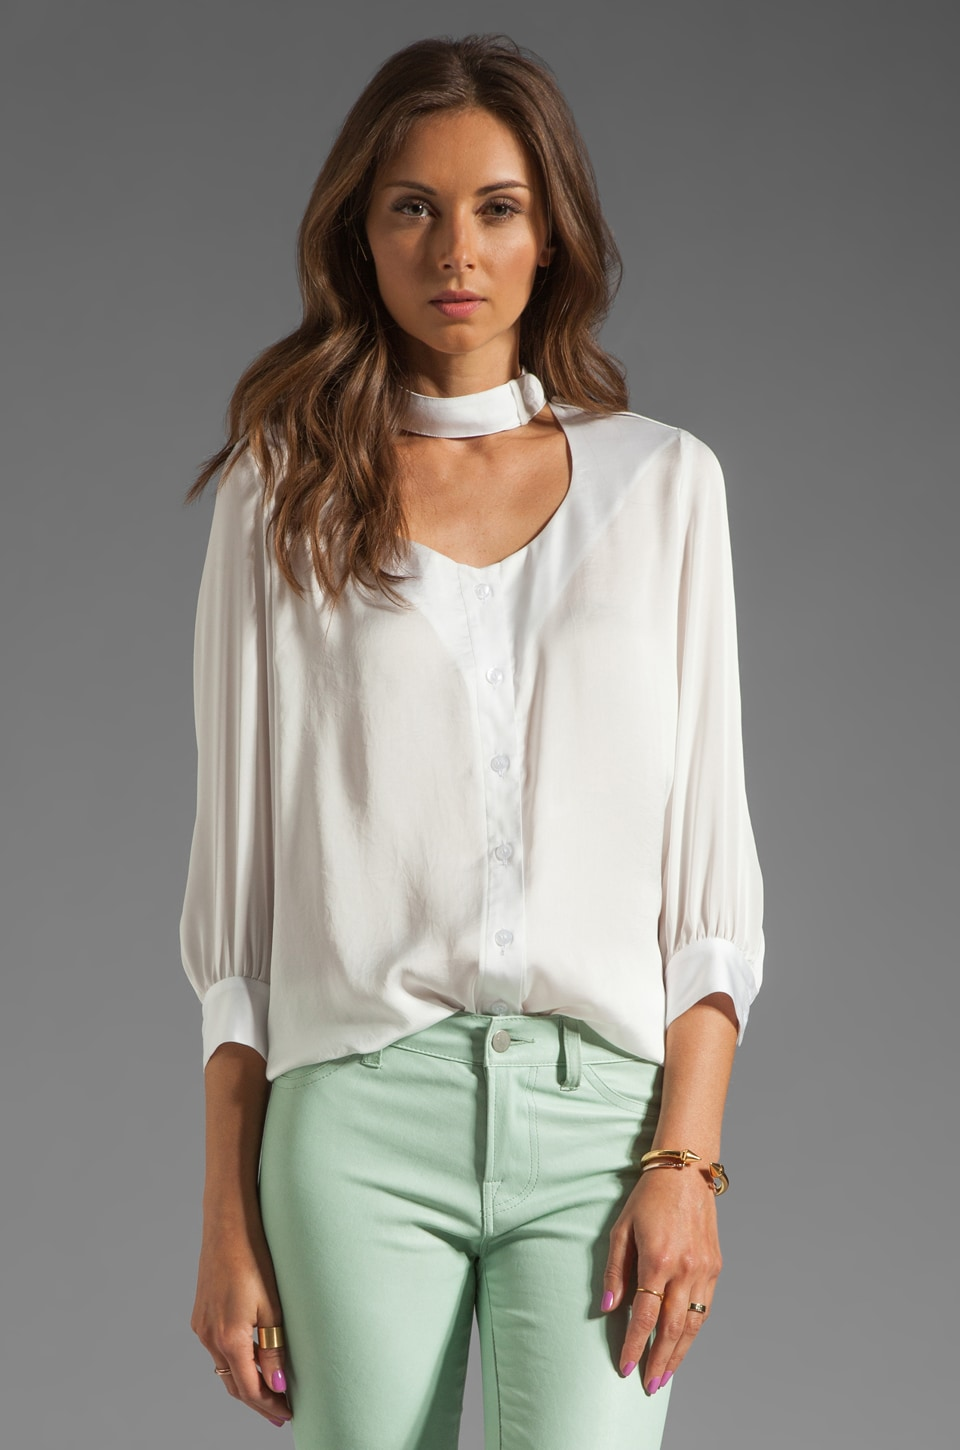 Smythe Choker Blouse in White